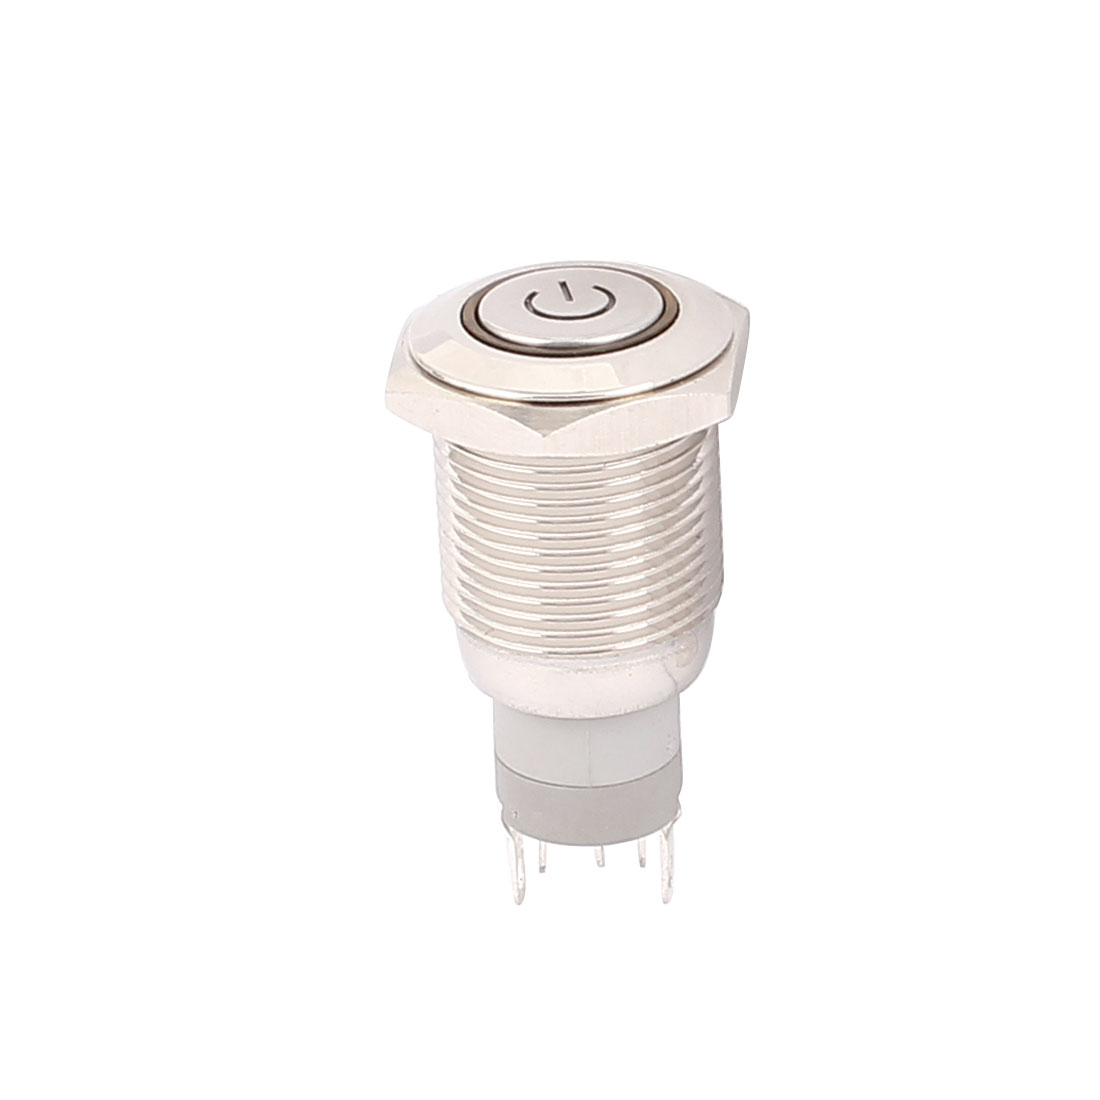 DC12V Red LED Angel Eye Power Indicator SPDT 1NO 1NC 5P 16mm Thread Latching Metal Push Button Switch